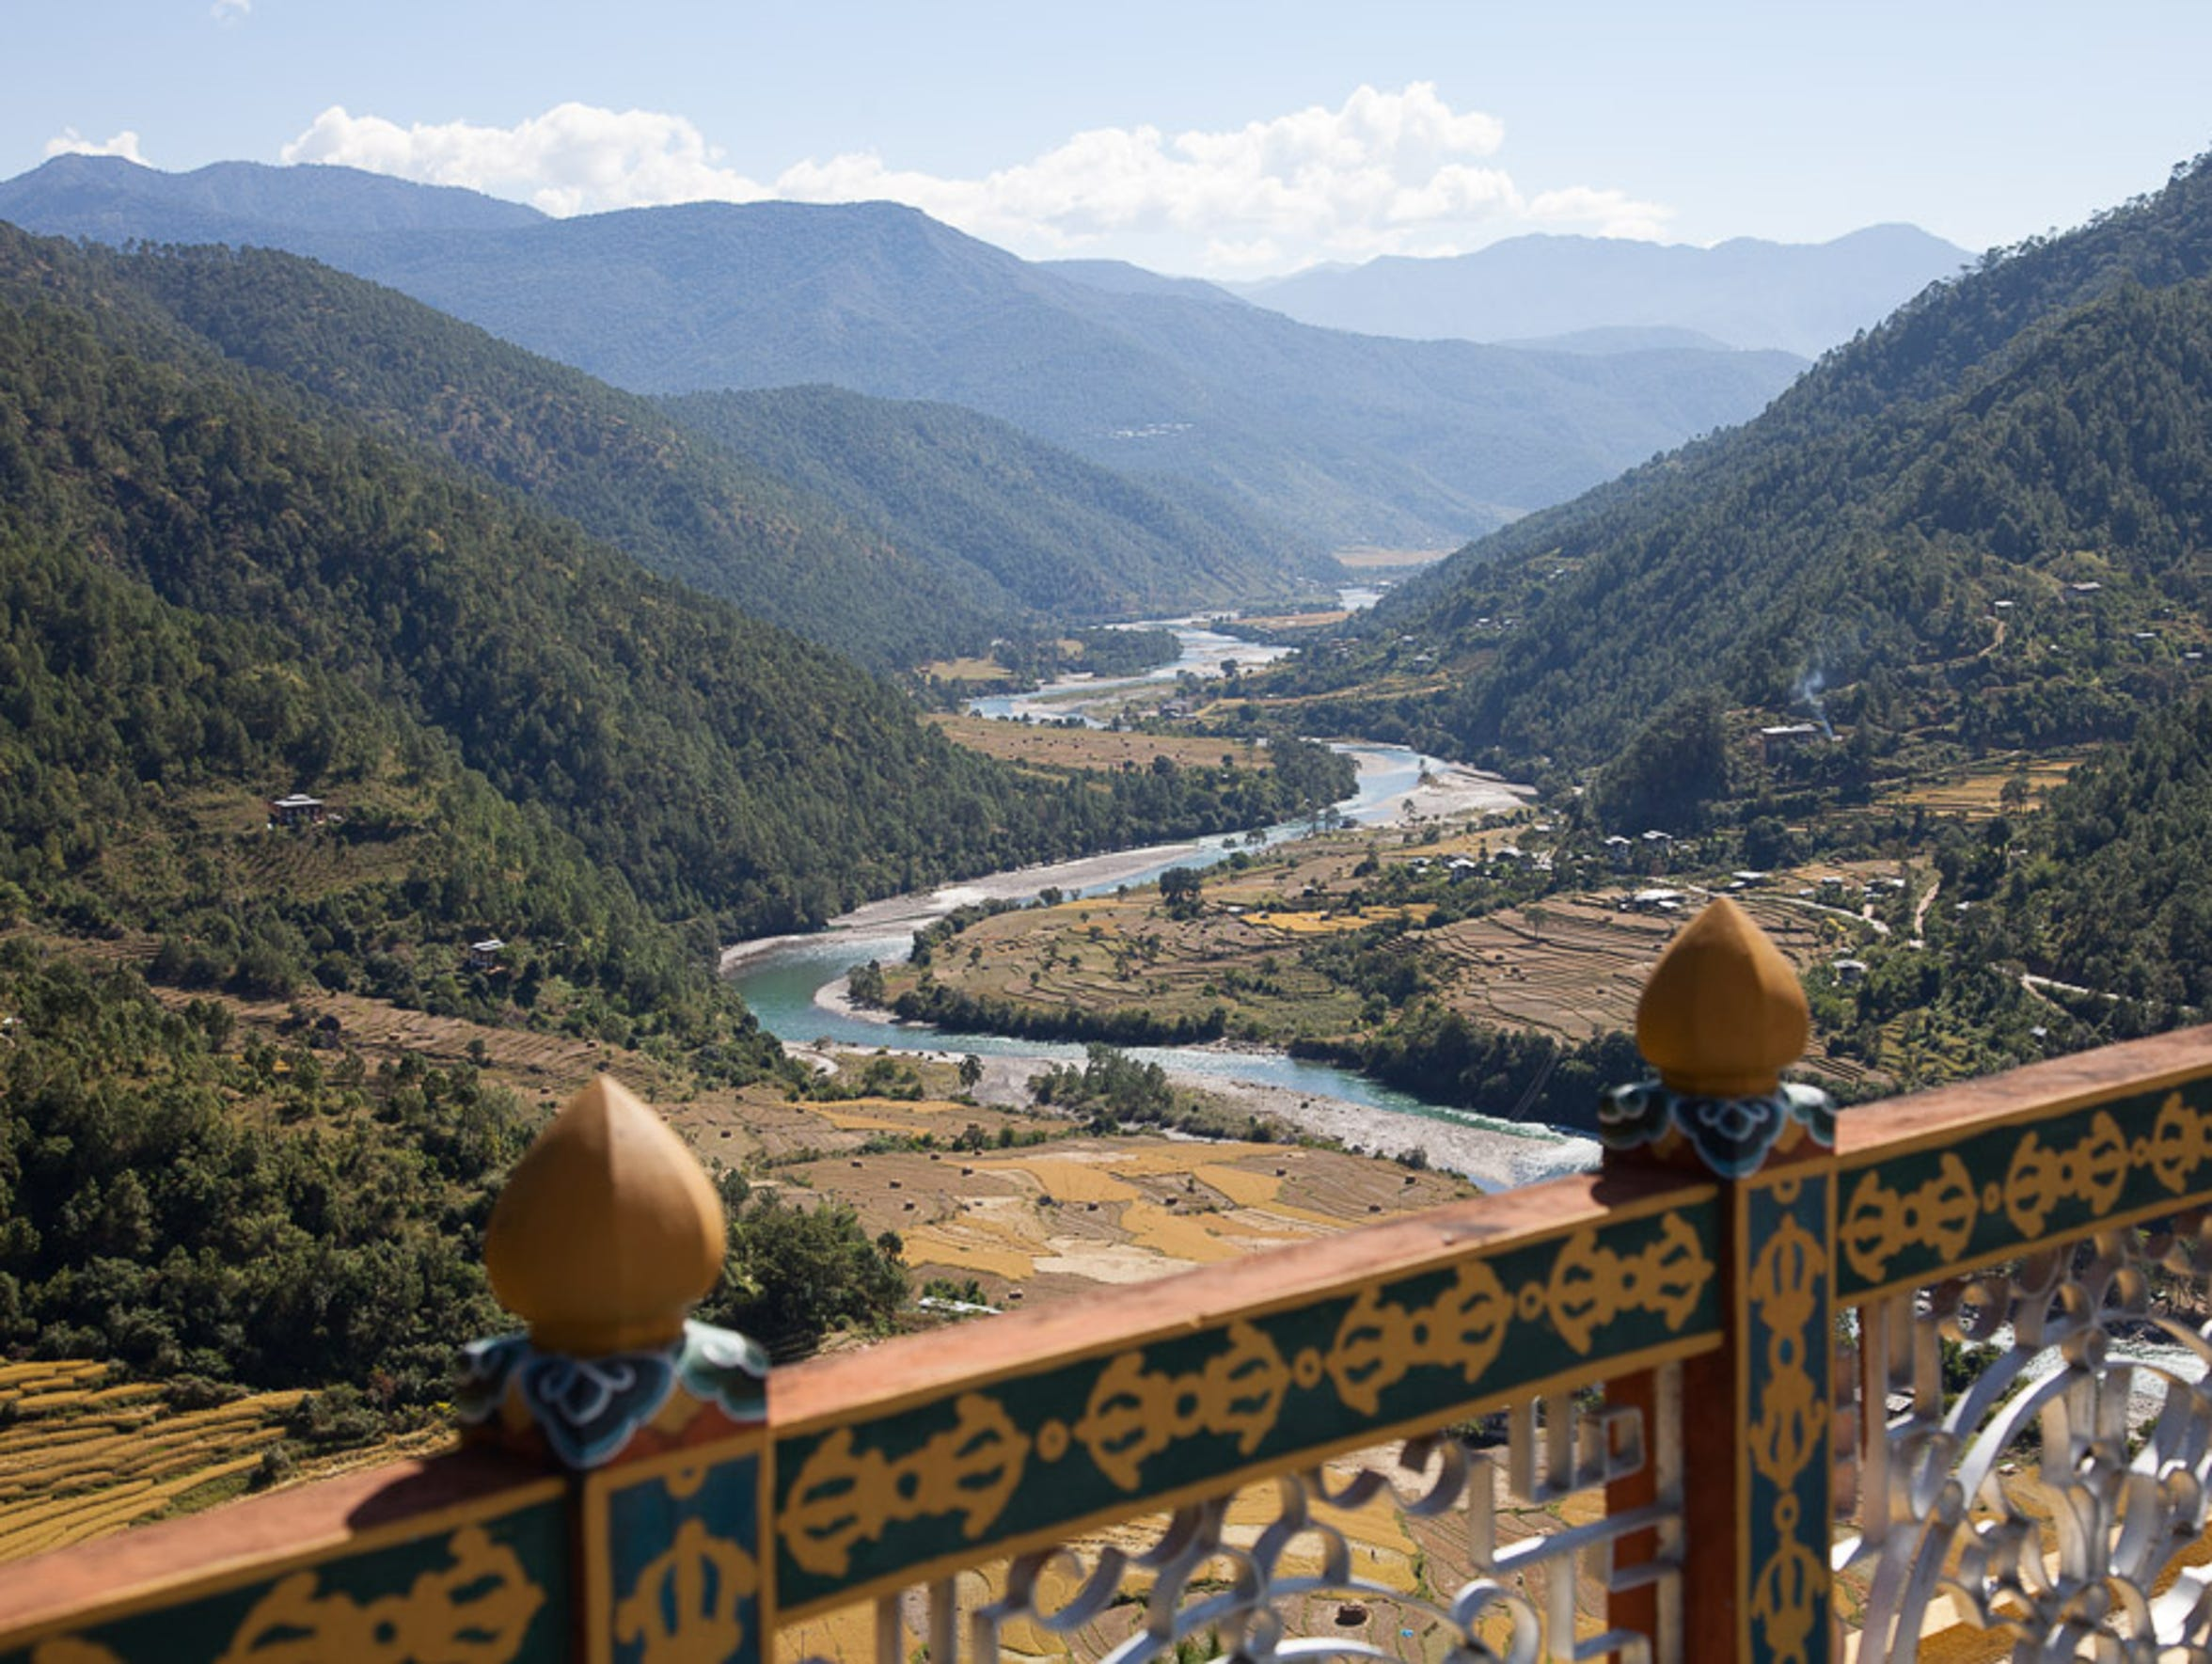 The view from Khamsum Yulley Namgyal Chorten temple